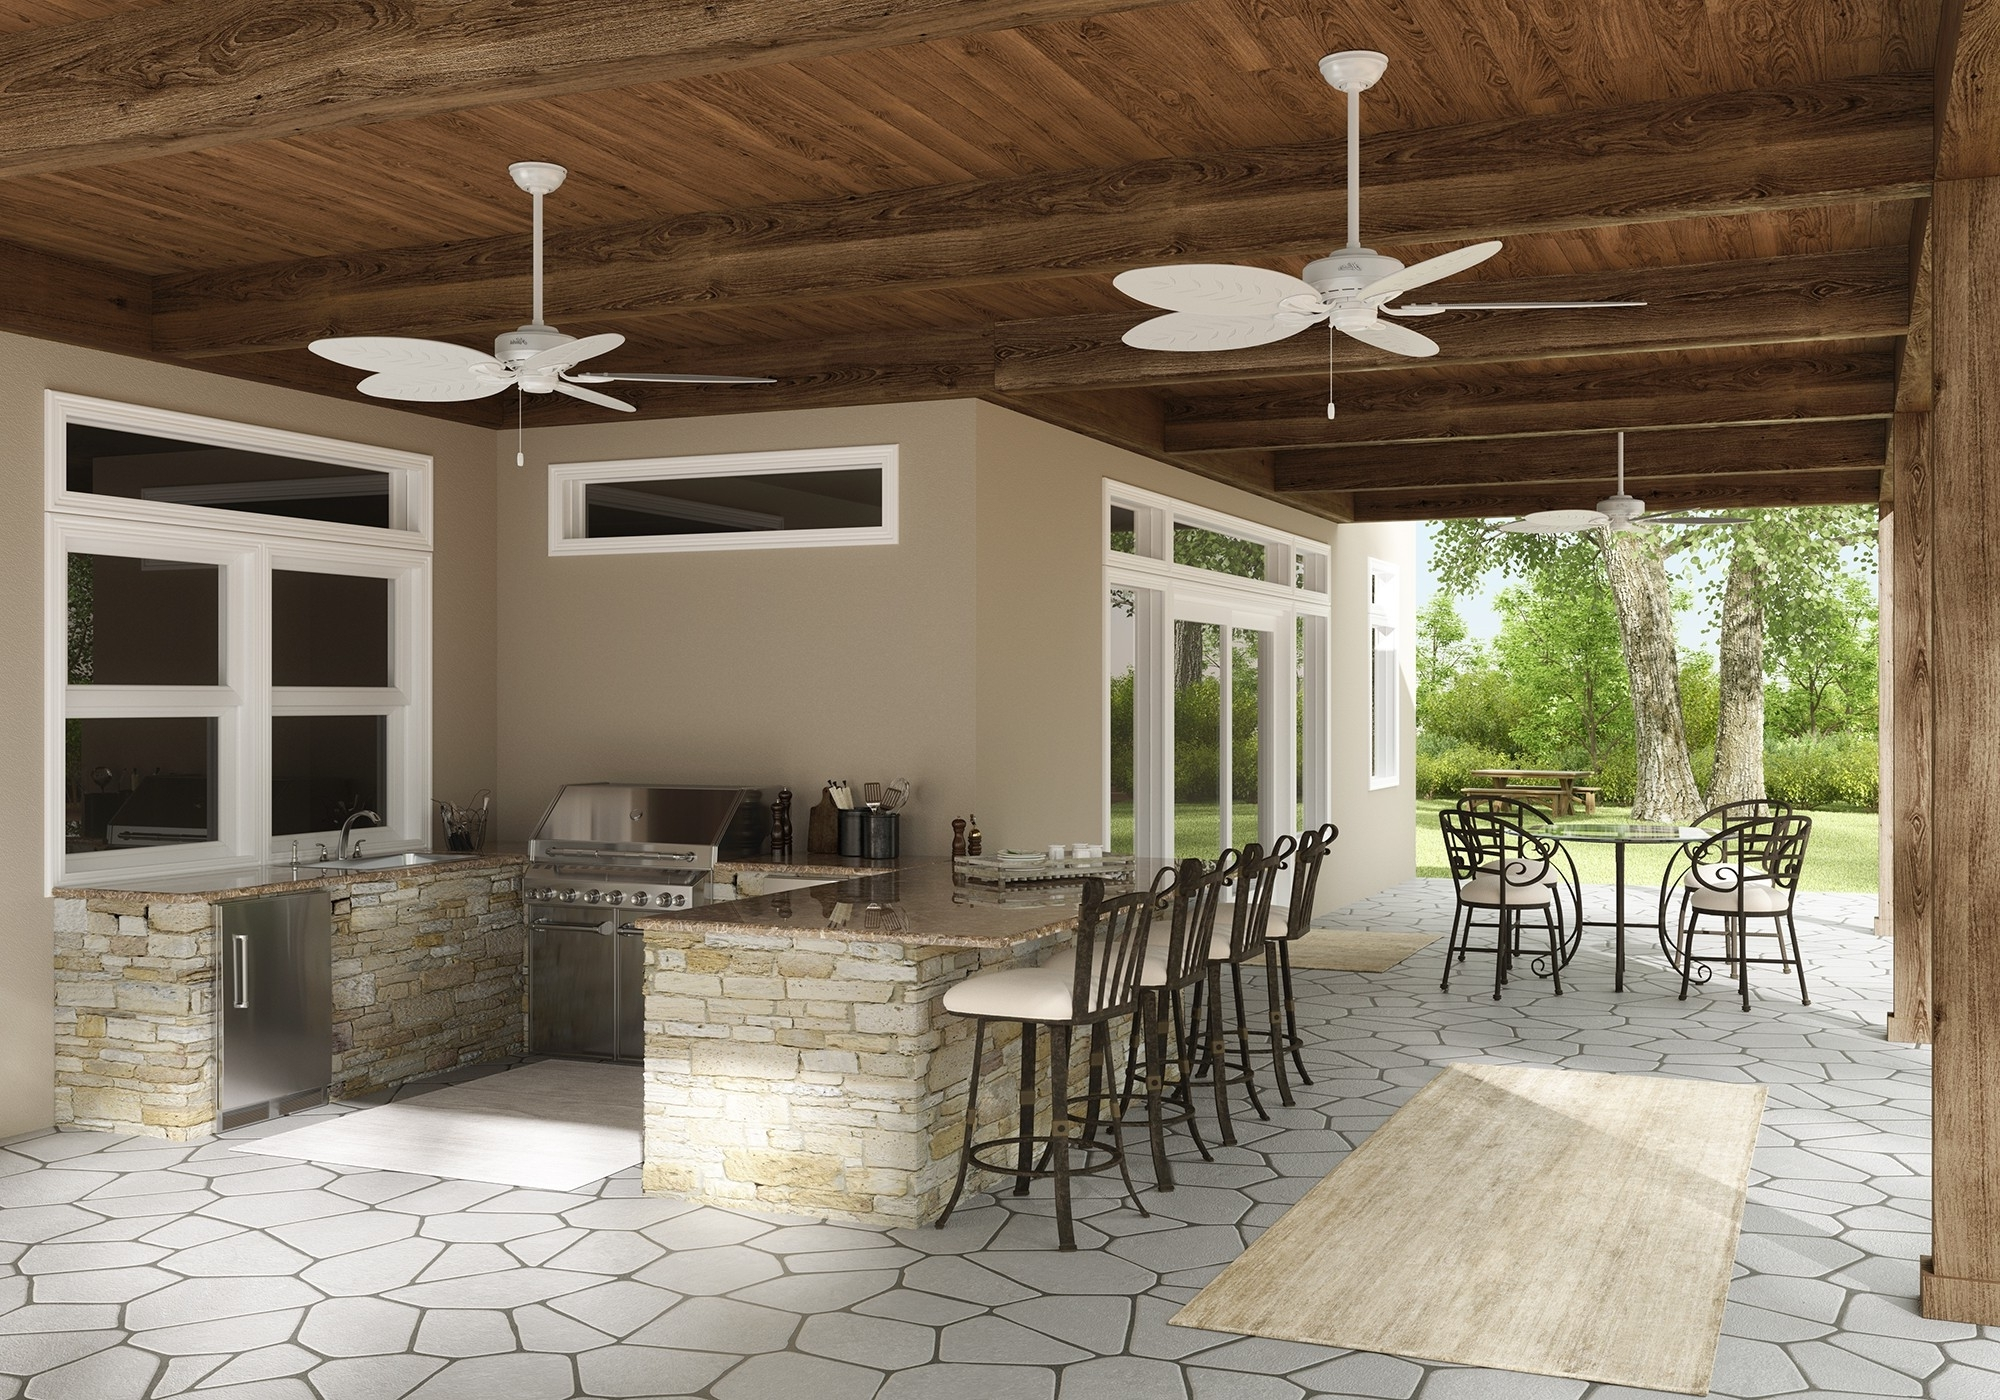 Joanna Gaines Outdoor Ceiling Fans In Most Recent How To Choose An Outdoor Ceiling Fan – Hunter Fan Blog (Gallery 19 of 20)